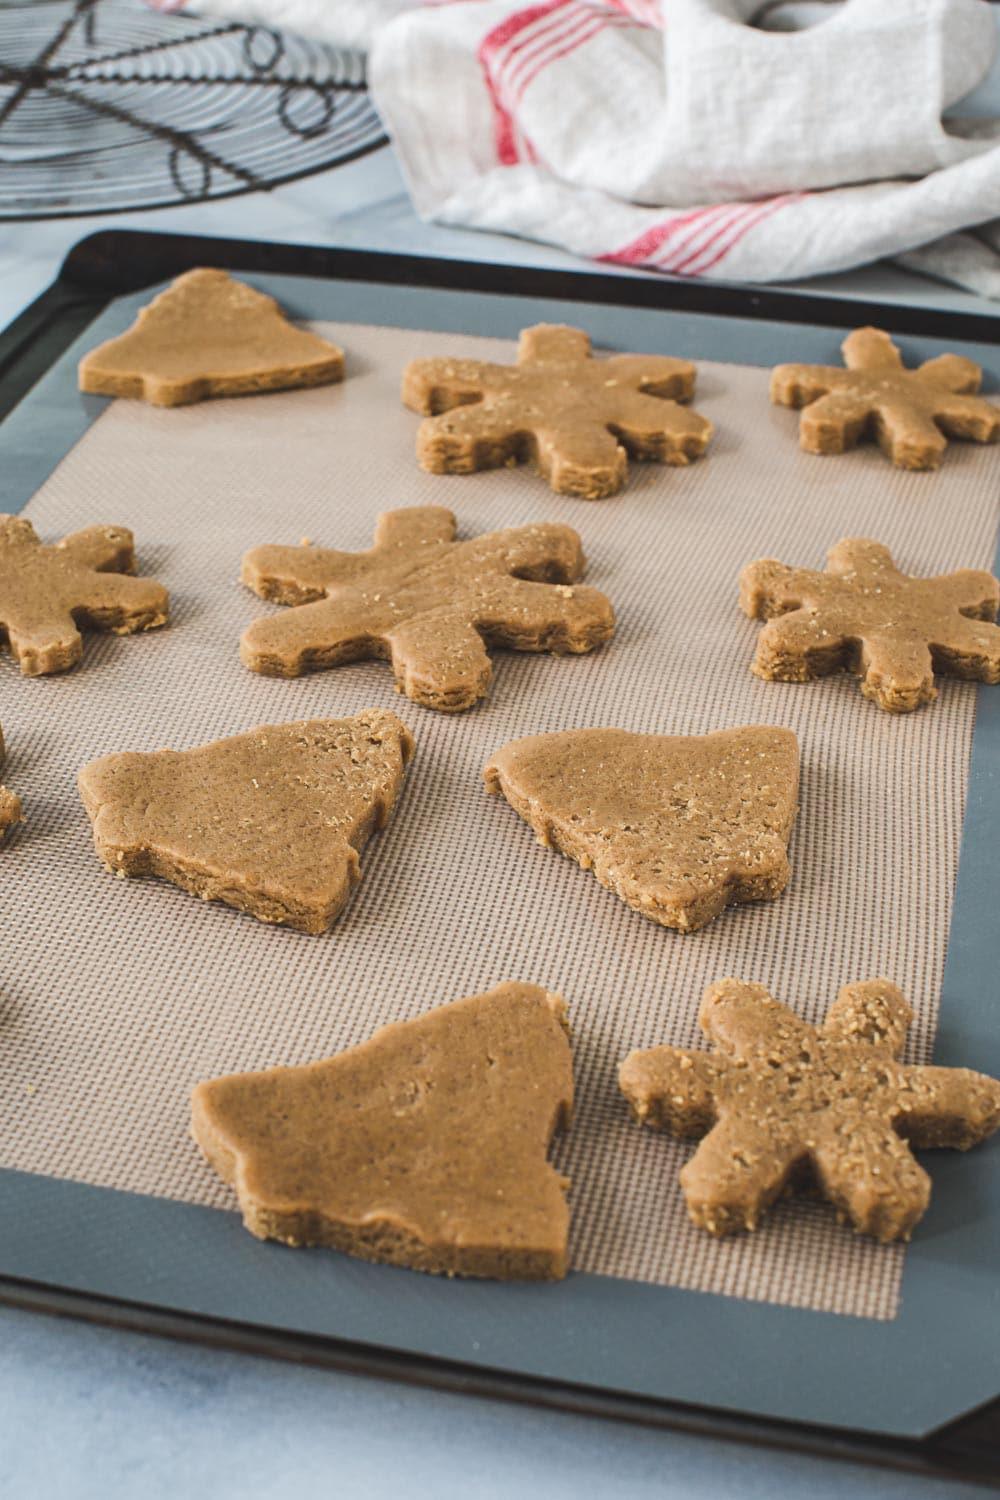 Gingerbread cookie dough cutouts on a baking sheet.